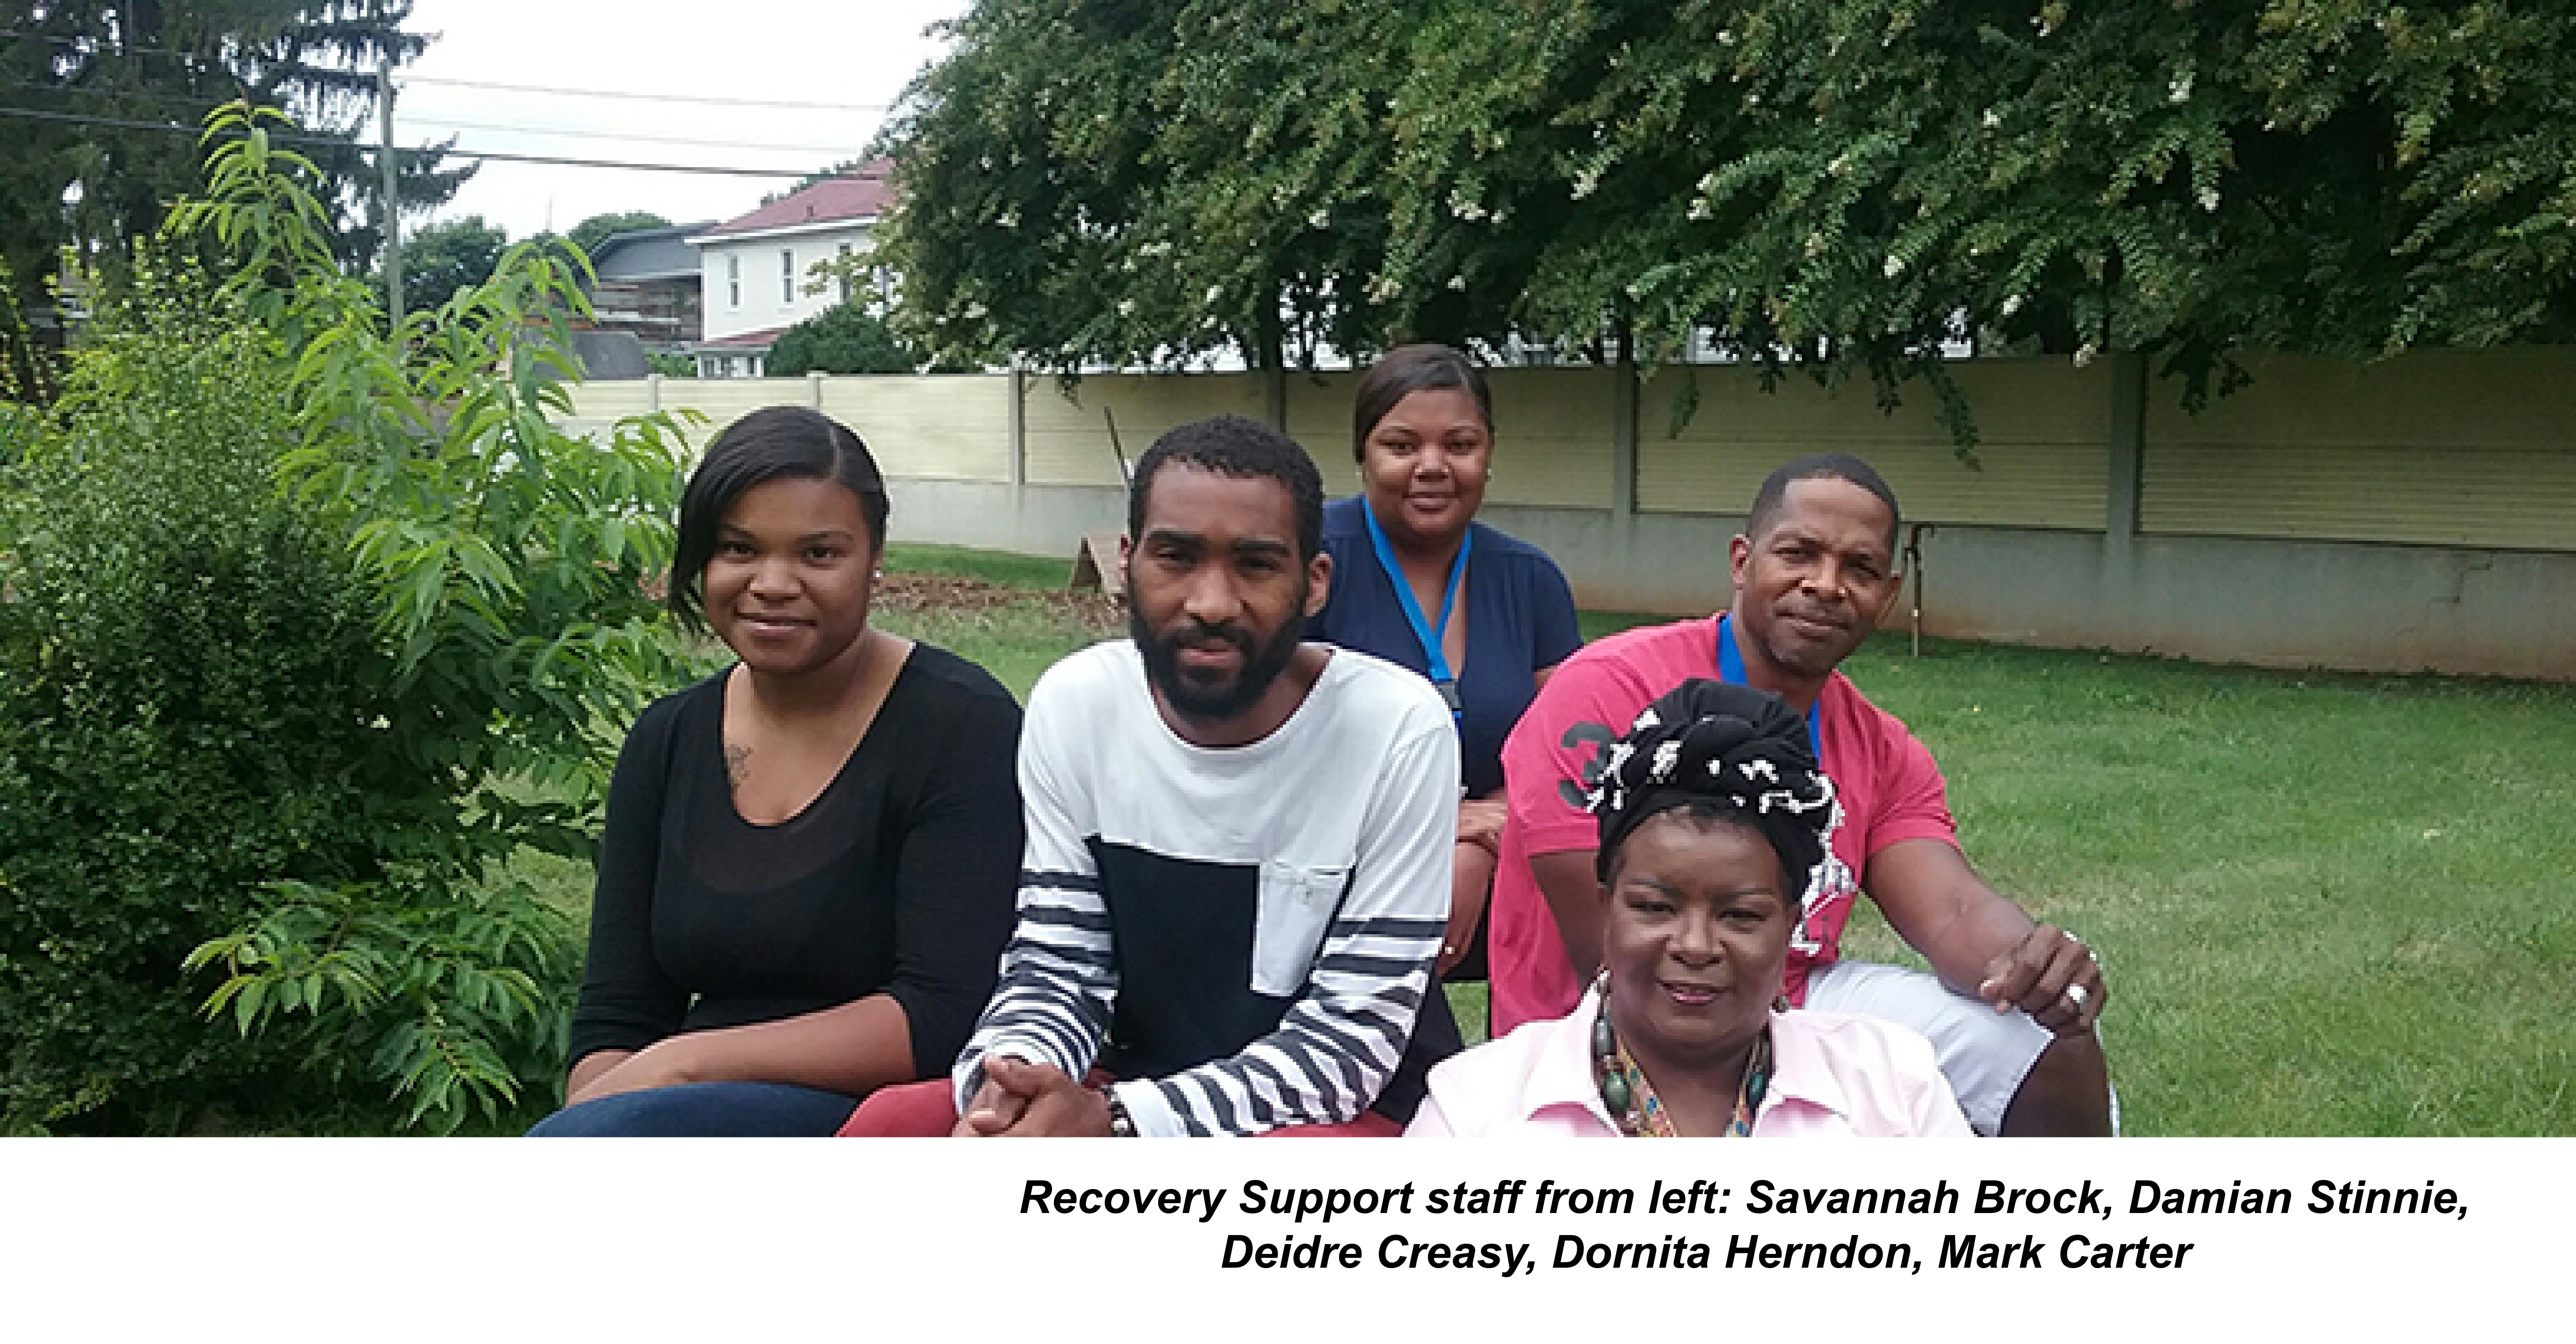 rECOVERY sUPPORT STAFF